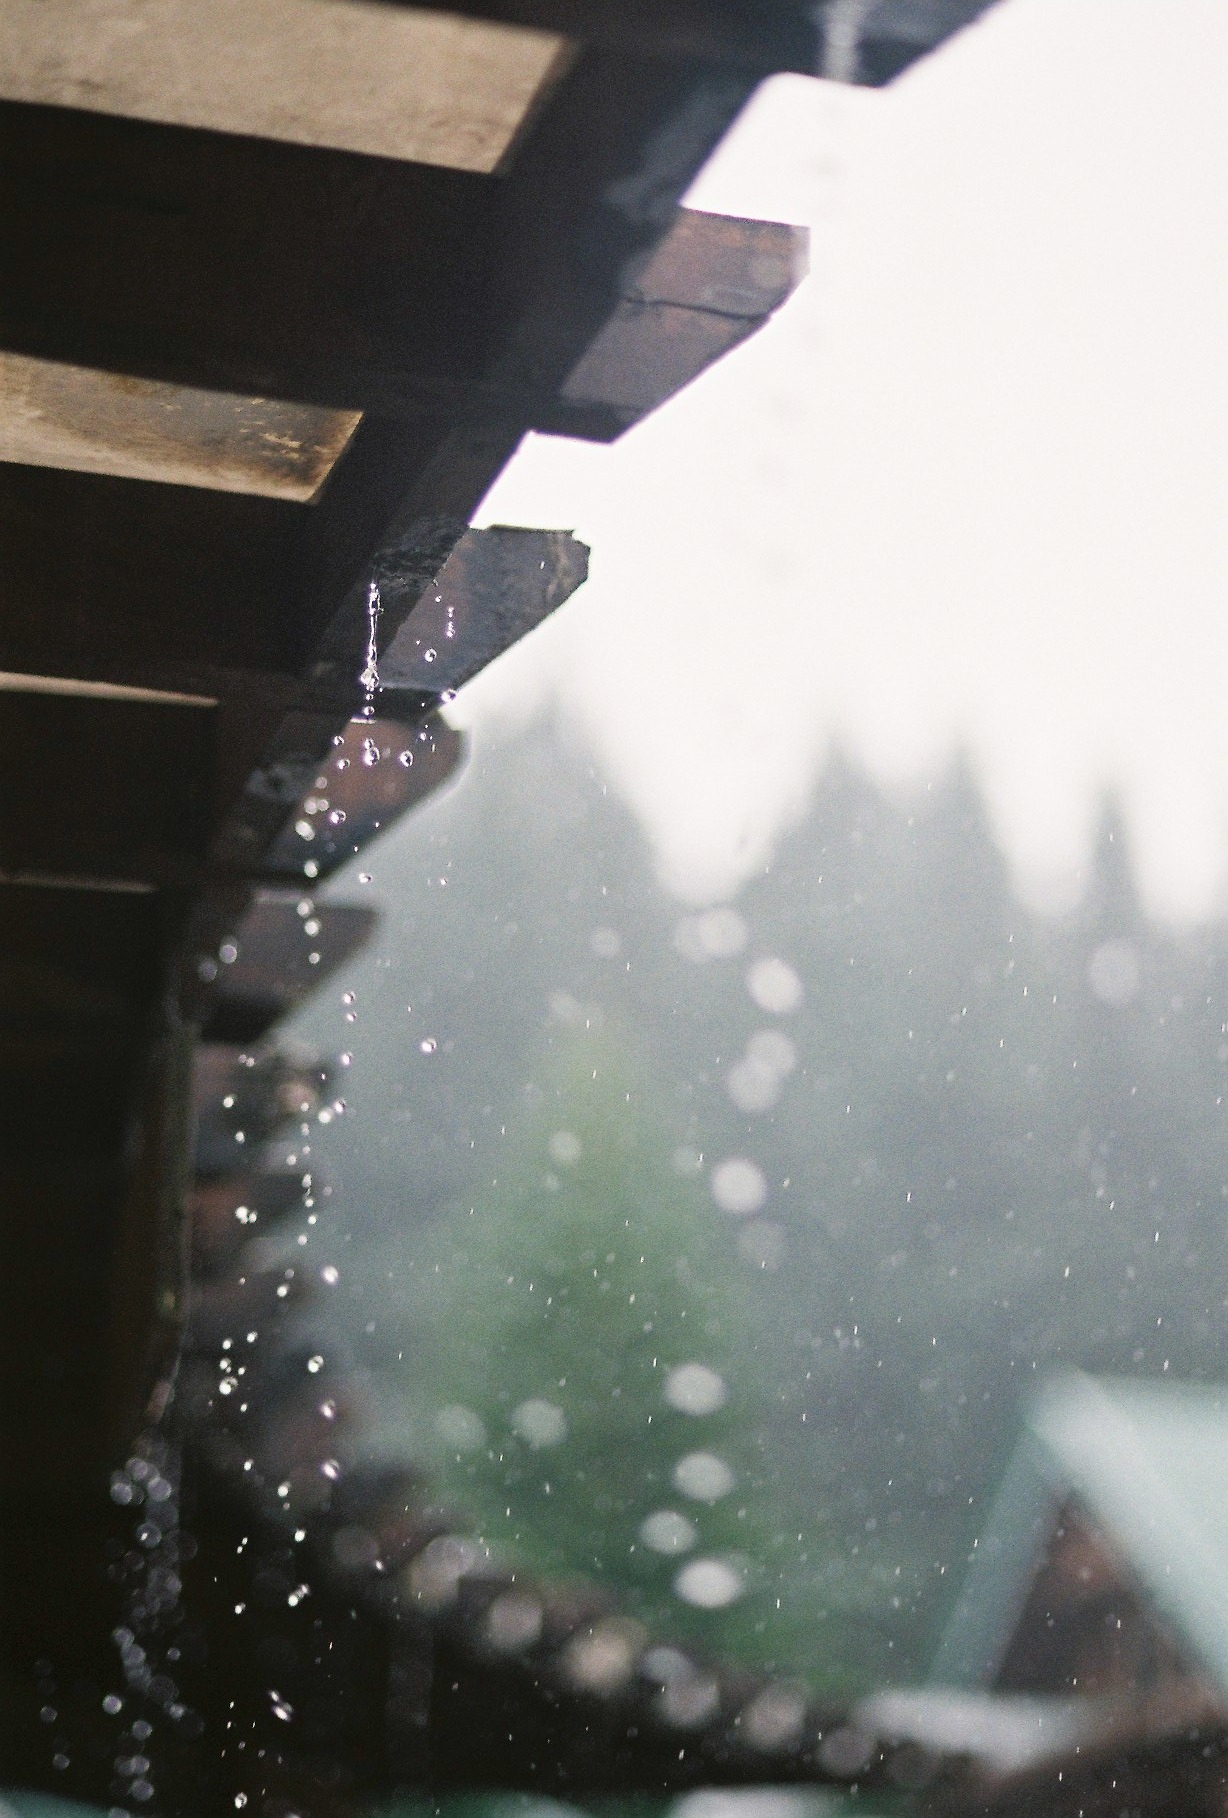 Japanese styled wood and rain ITCHBAN.com